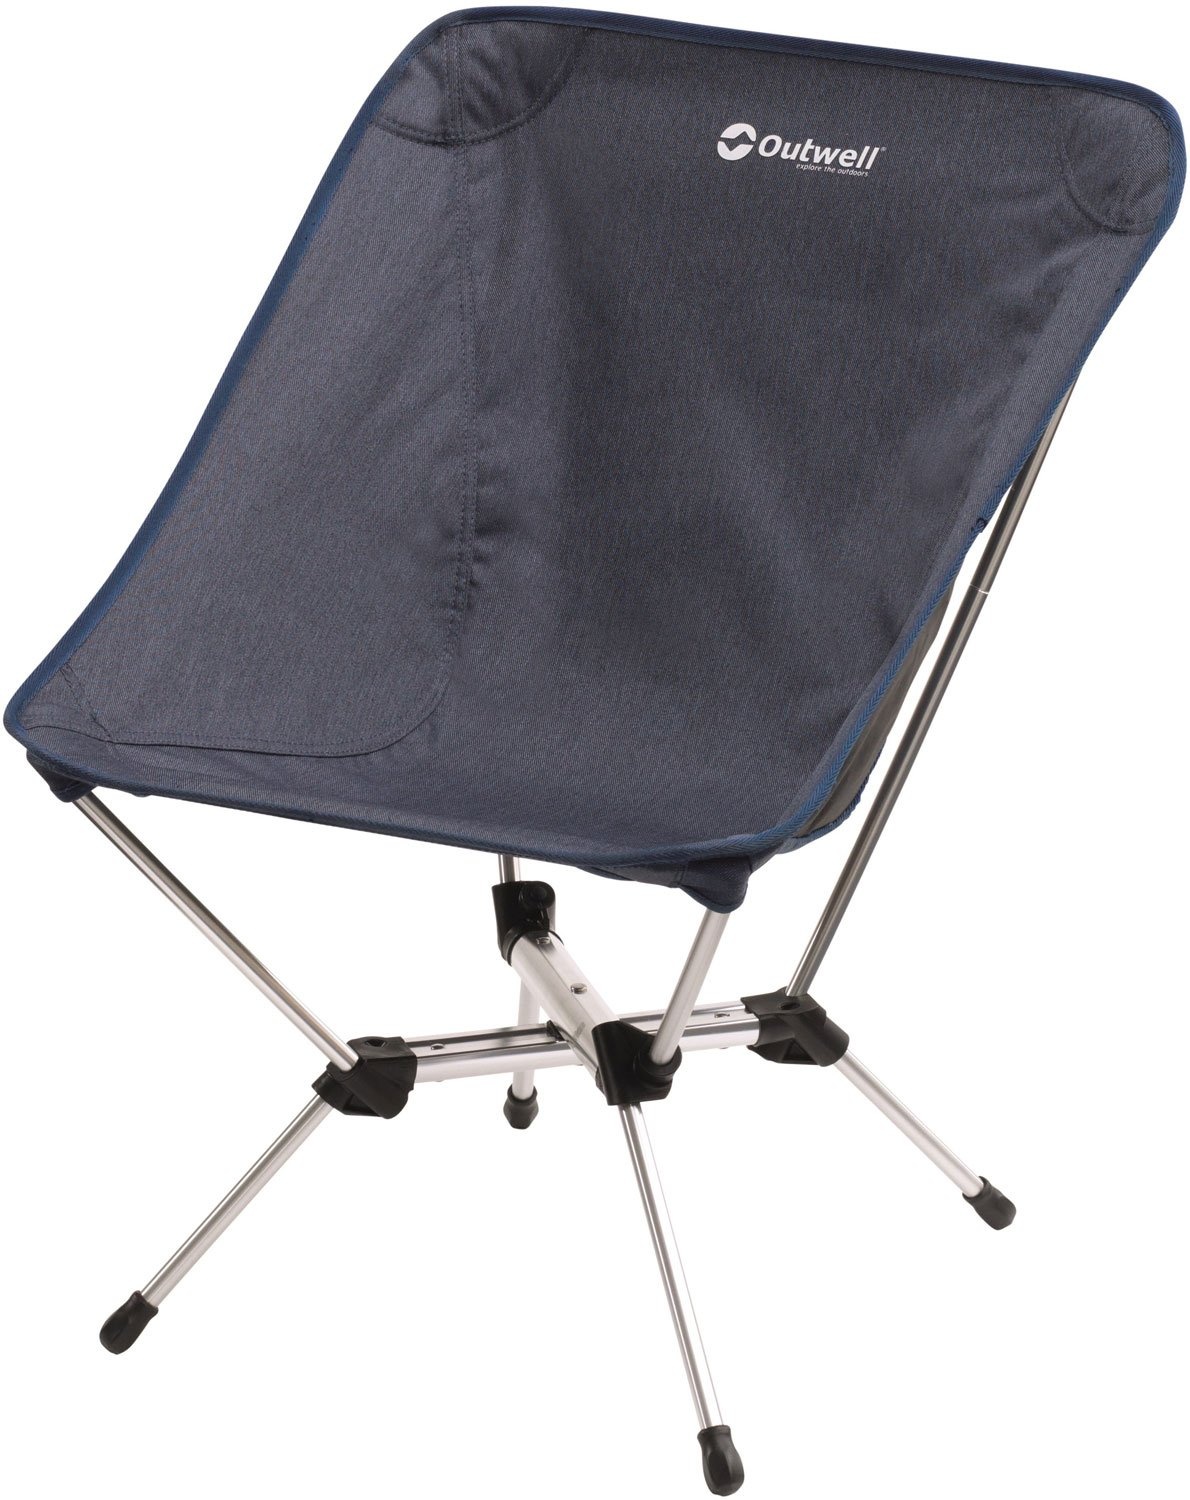 Outwell Mount Conner Campingstuhl, Blau, 46.5 x 50 x 68 cm